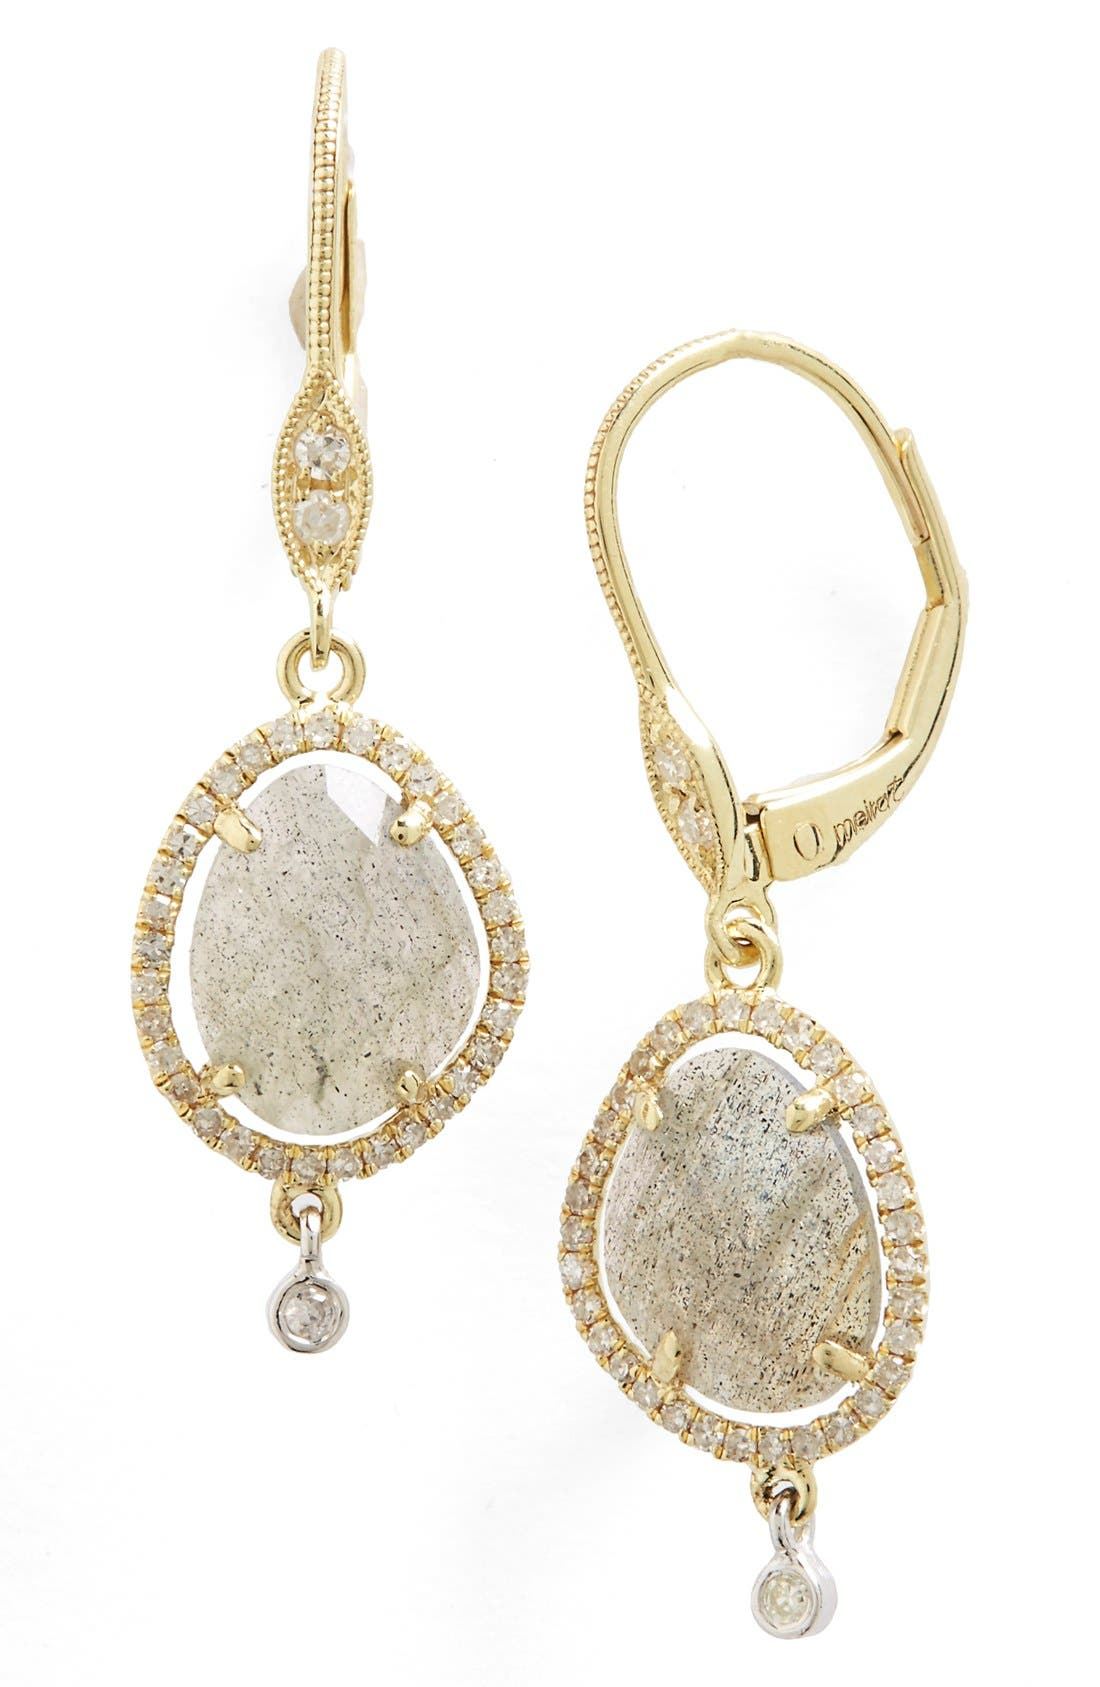 Diamond & Semiprecious Stone Drop Earrings,                         Main,                         color, 030